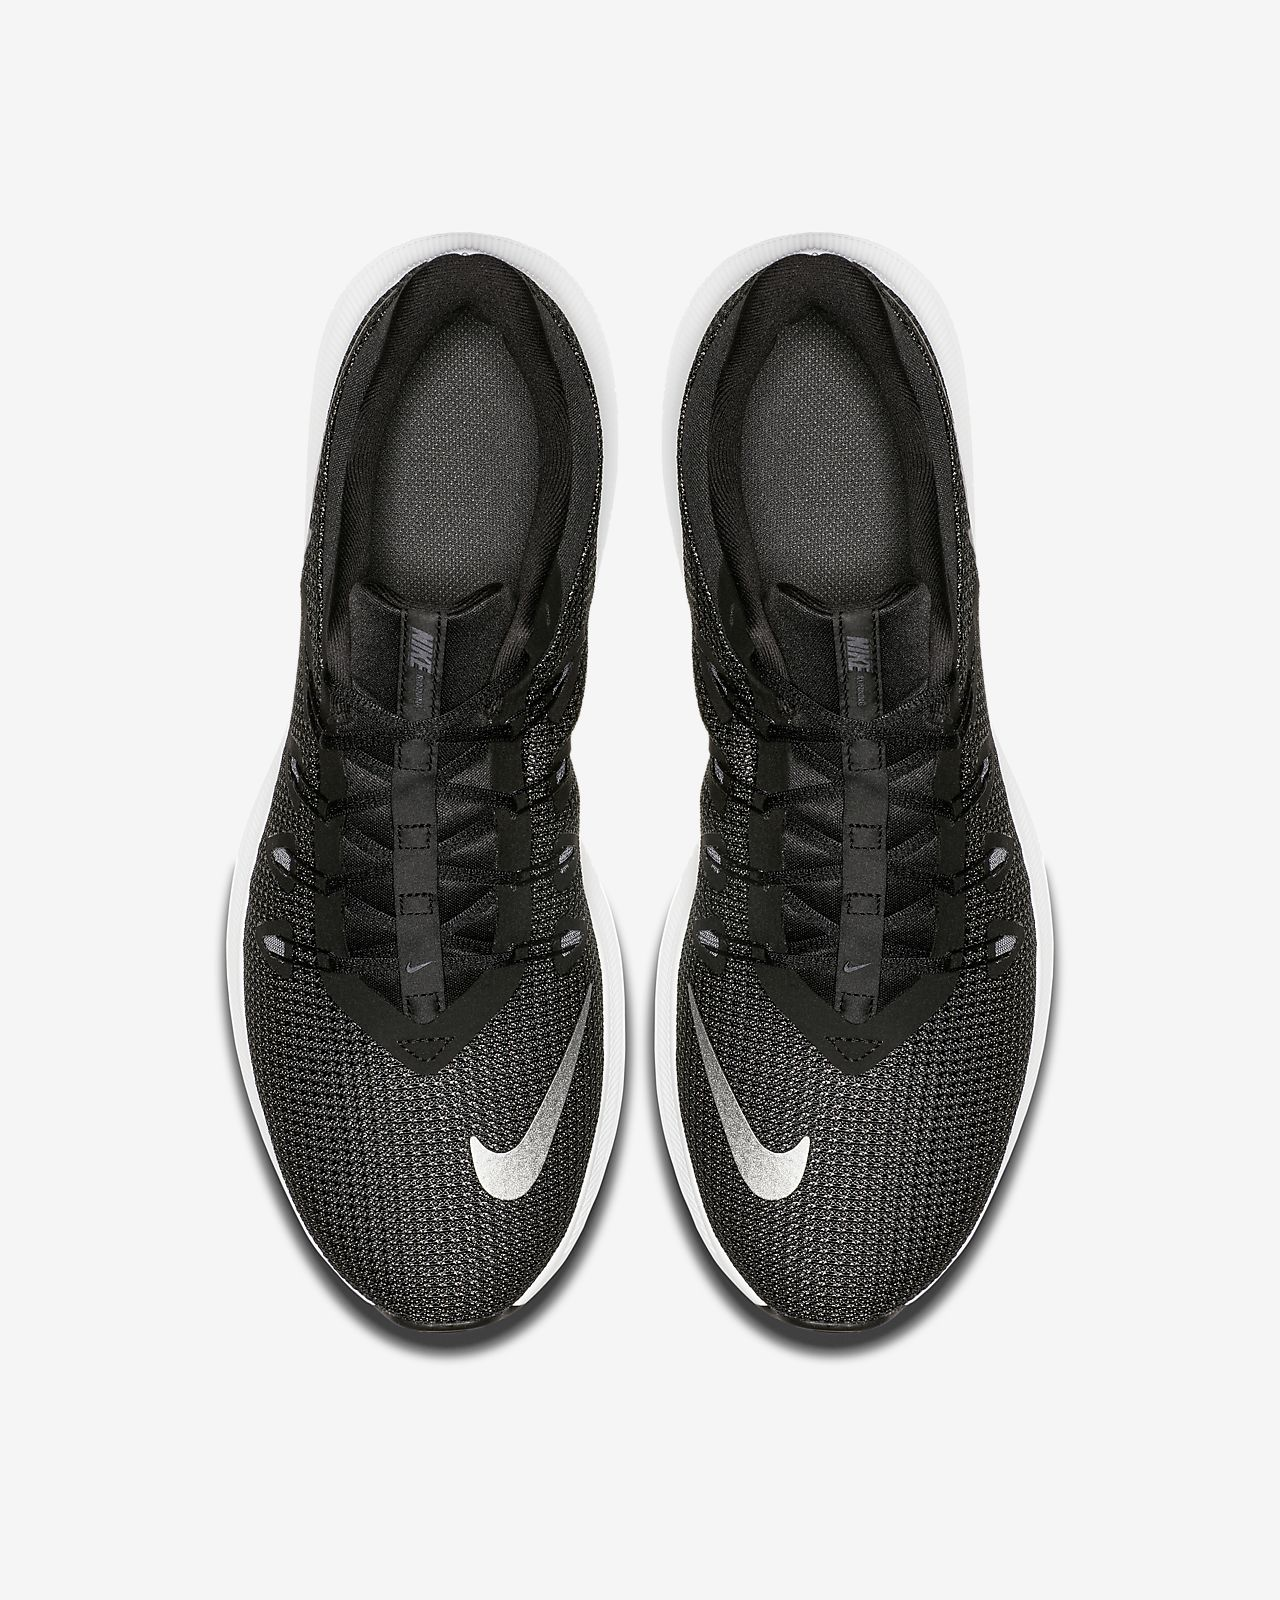 72a079f5229 Nike Quest Men s Running Shoe. Nike.com GB